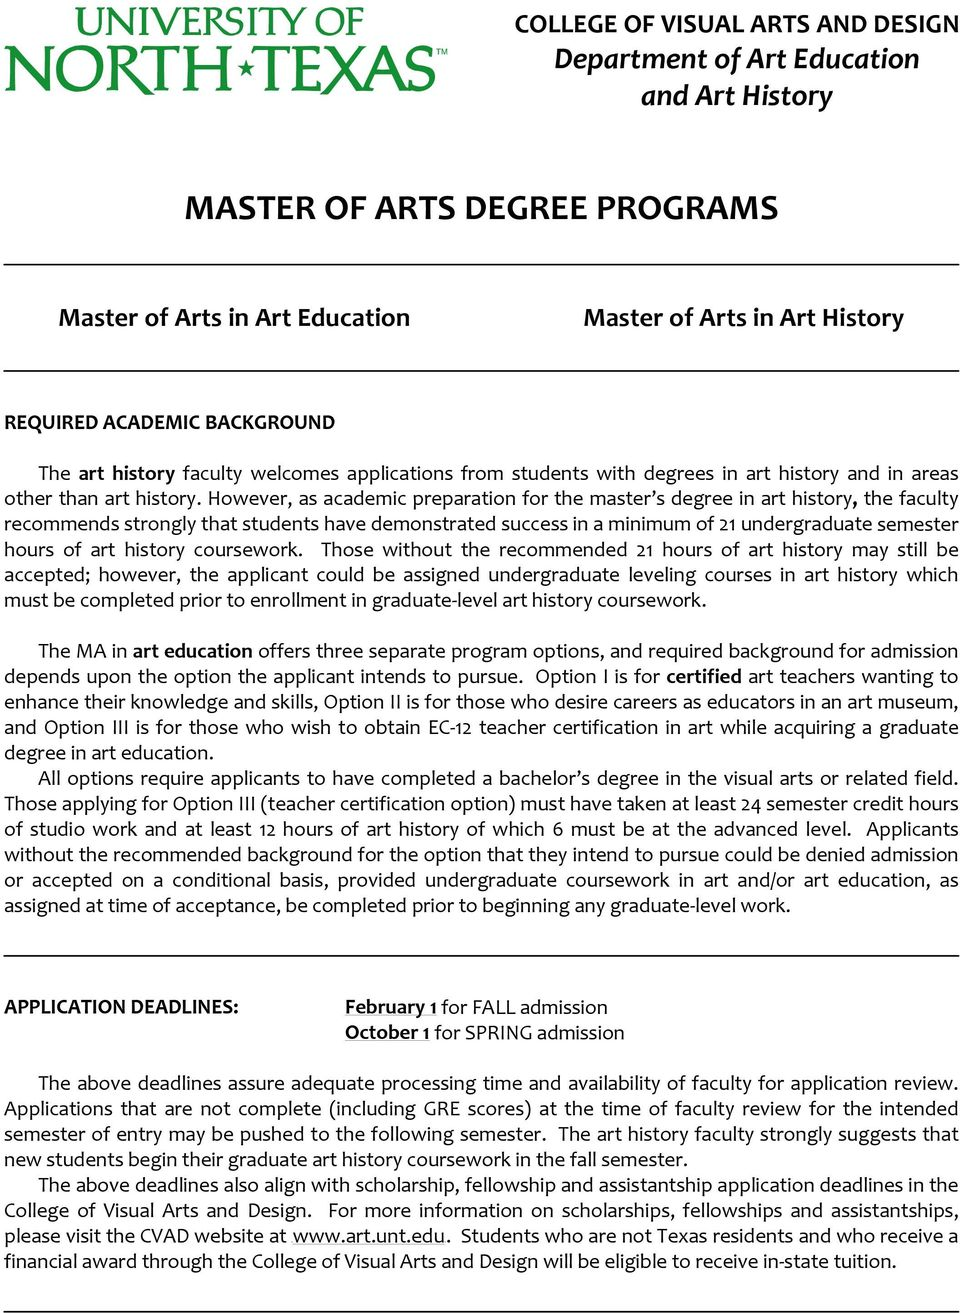 However, as academic preparation for the master s degree in art history, the faculty recommends strongly that students have demonstrated success in a minimum of 21 undergraduate semester hours of art